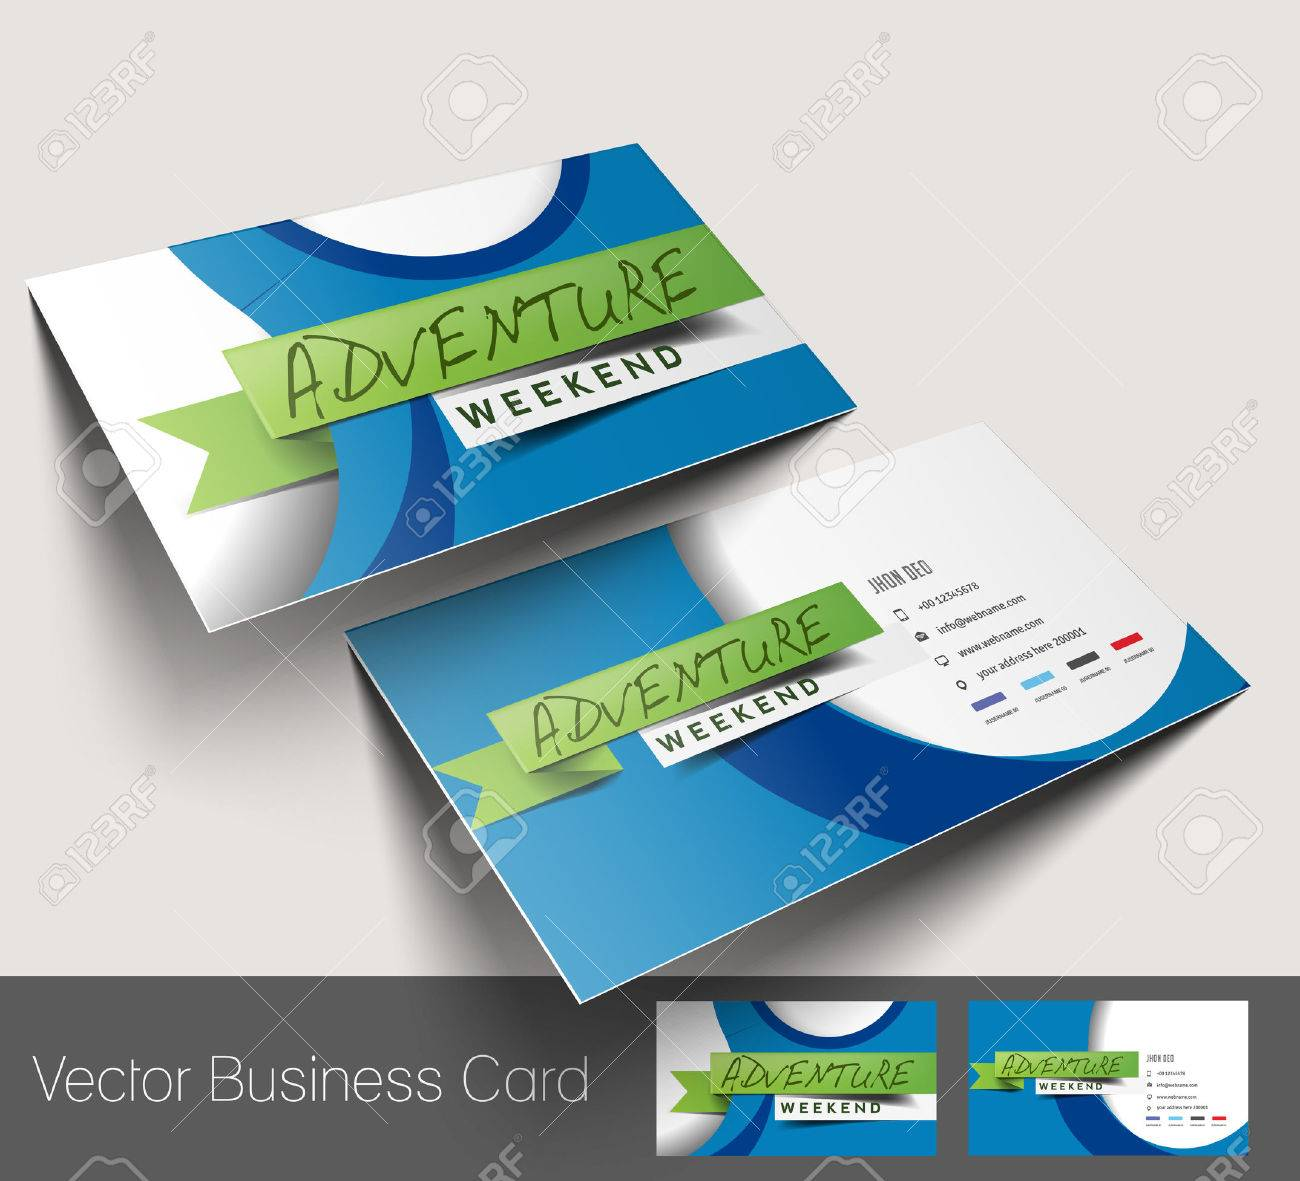 Travel Agent Business Card Set Royalty Free Cliparts, Vectors, And ...